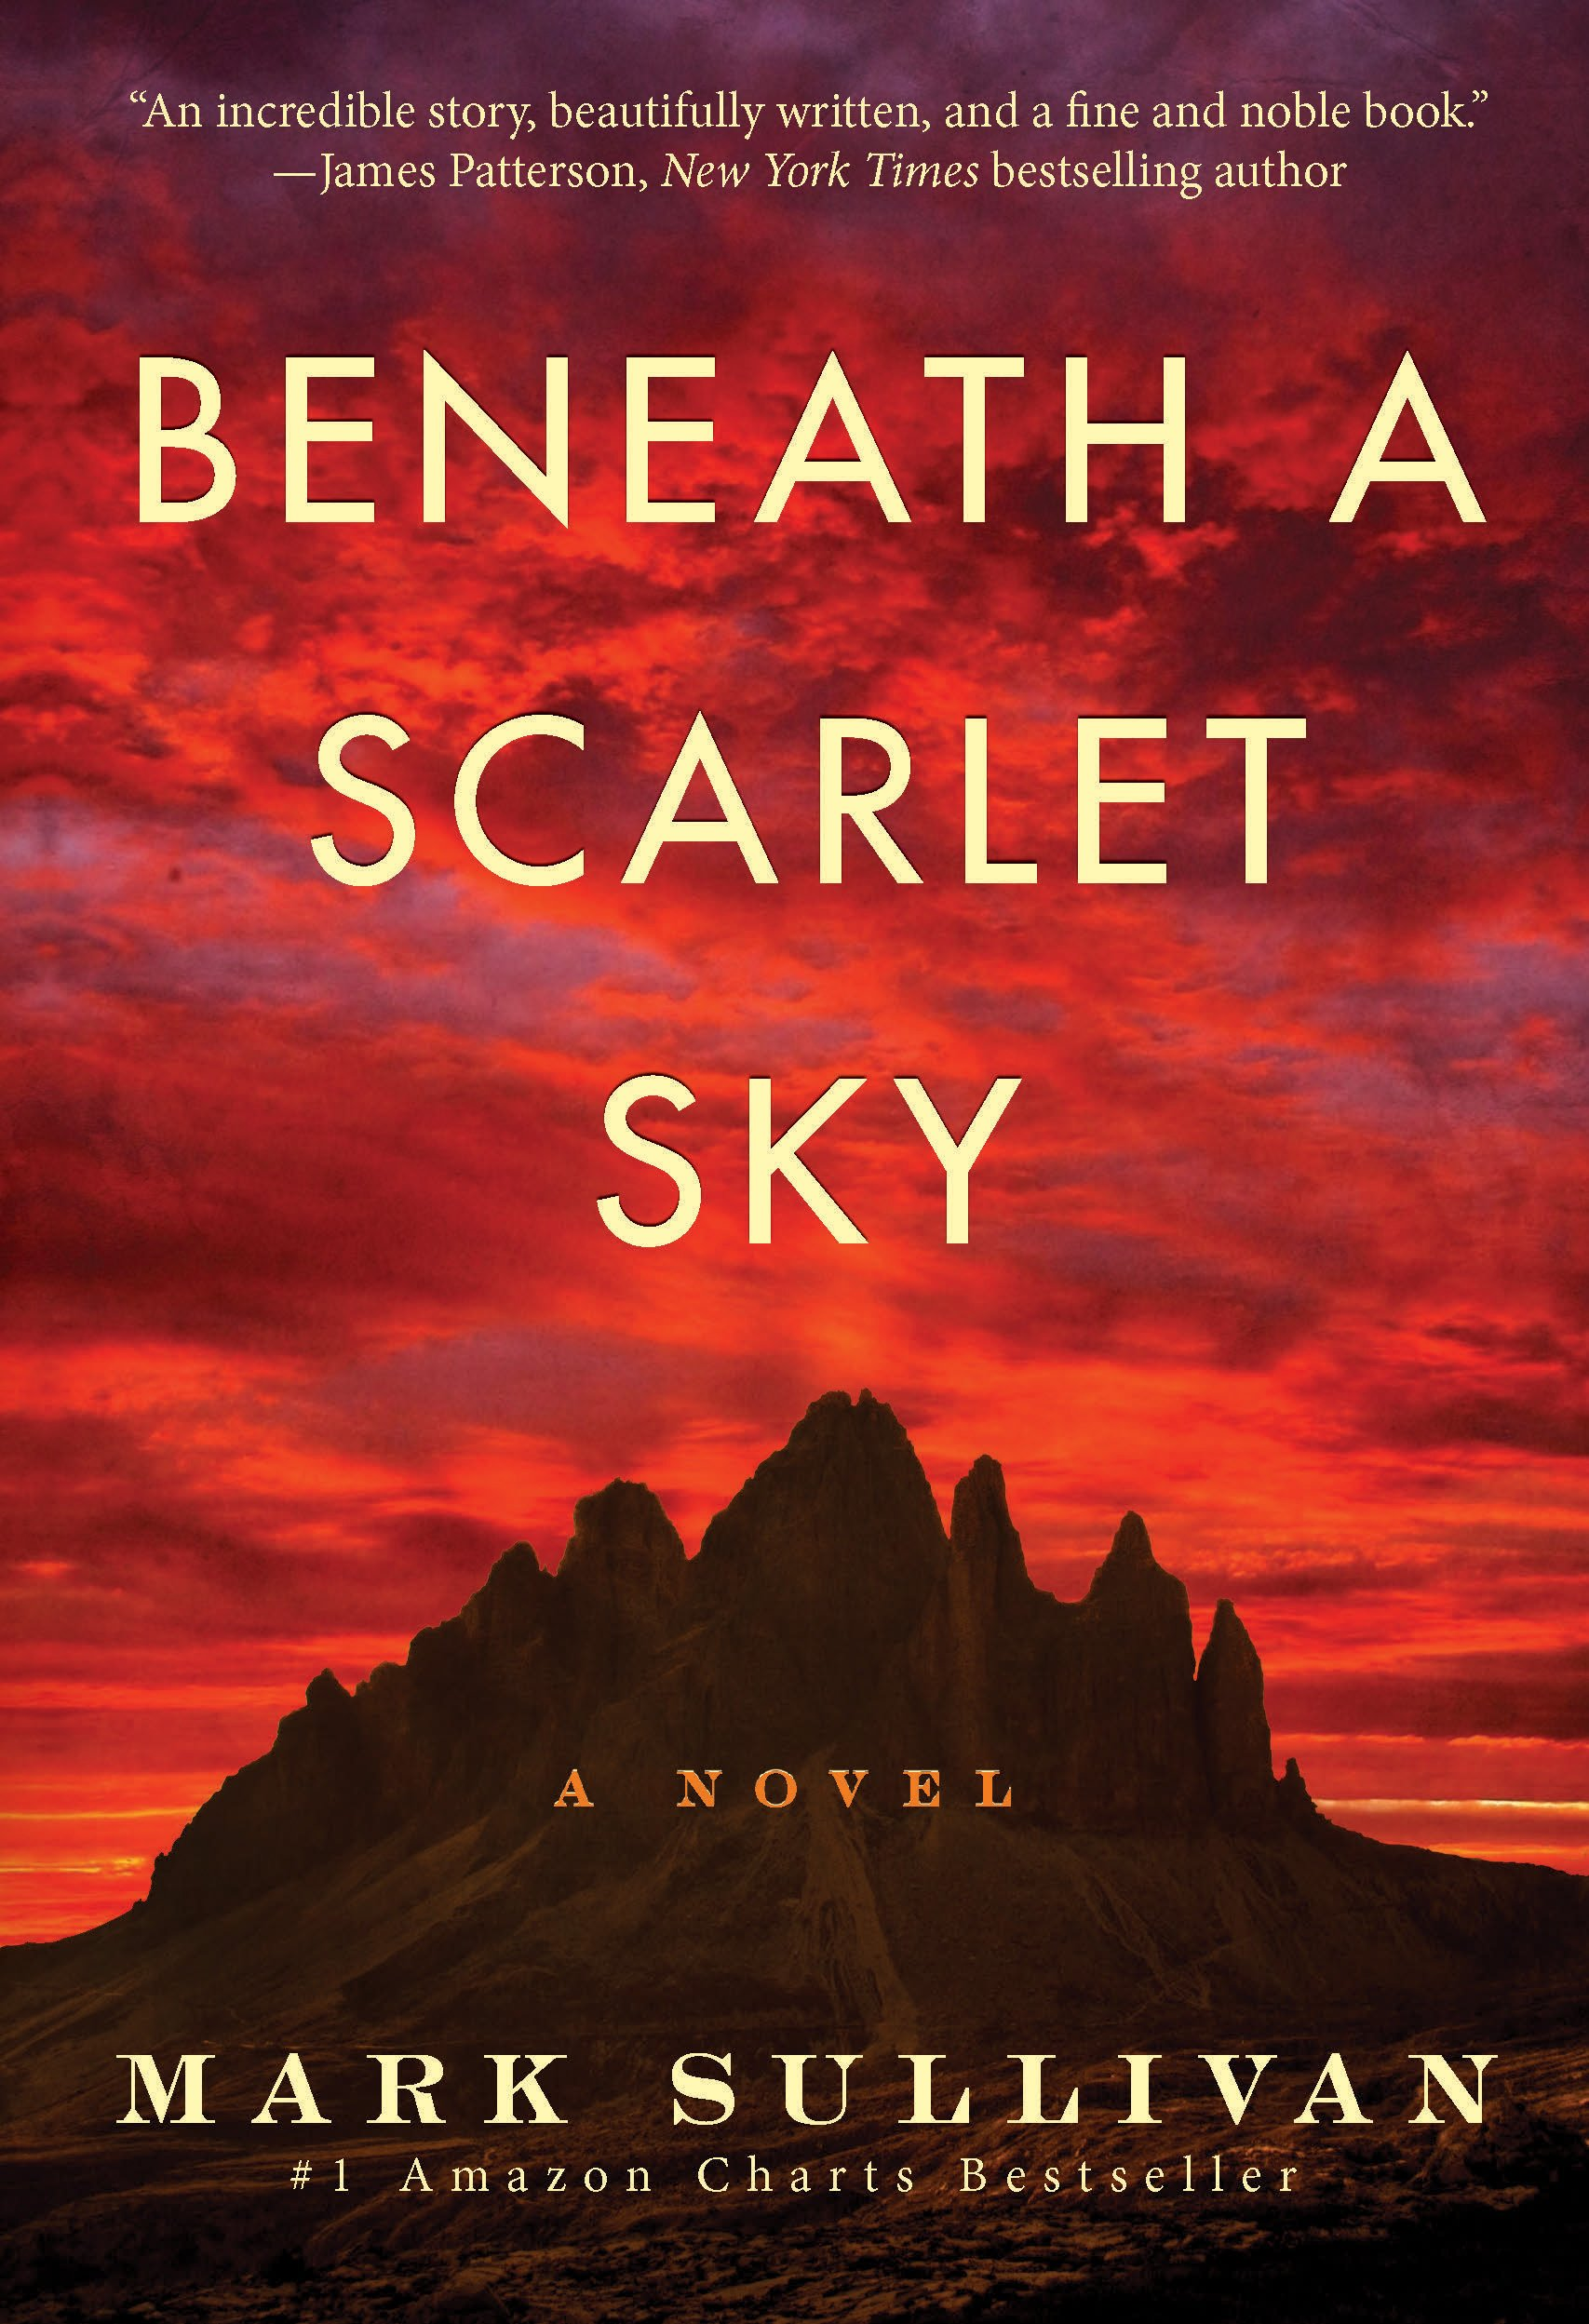 Beneath Scarlet Sky